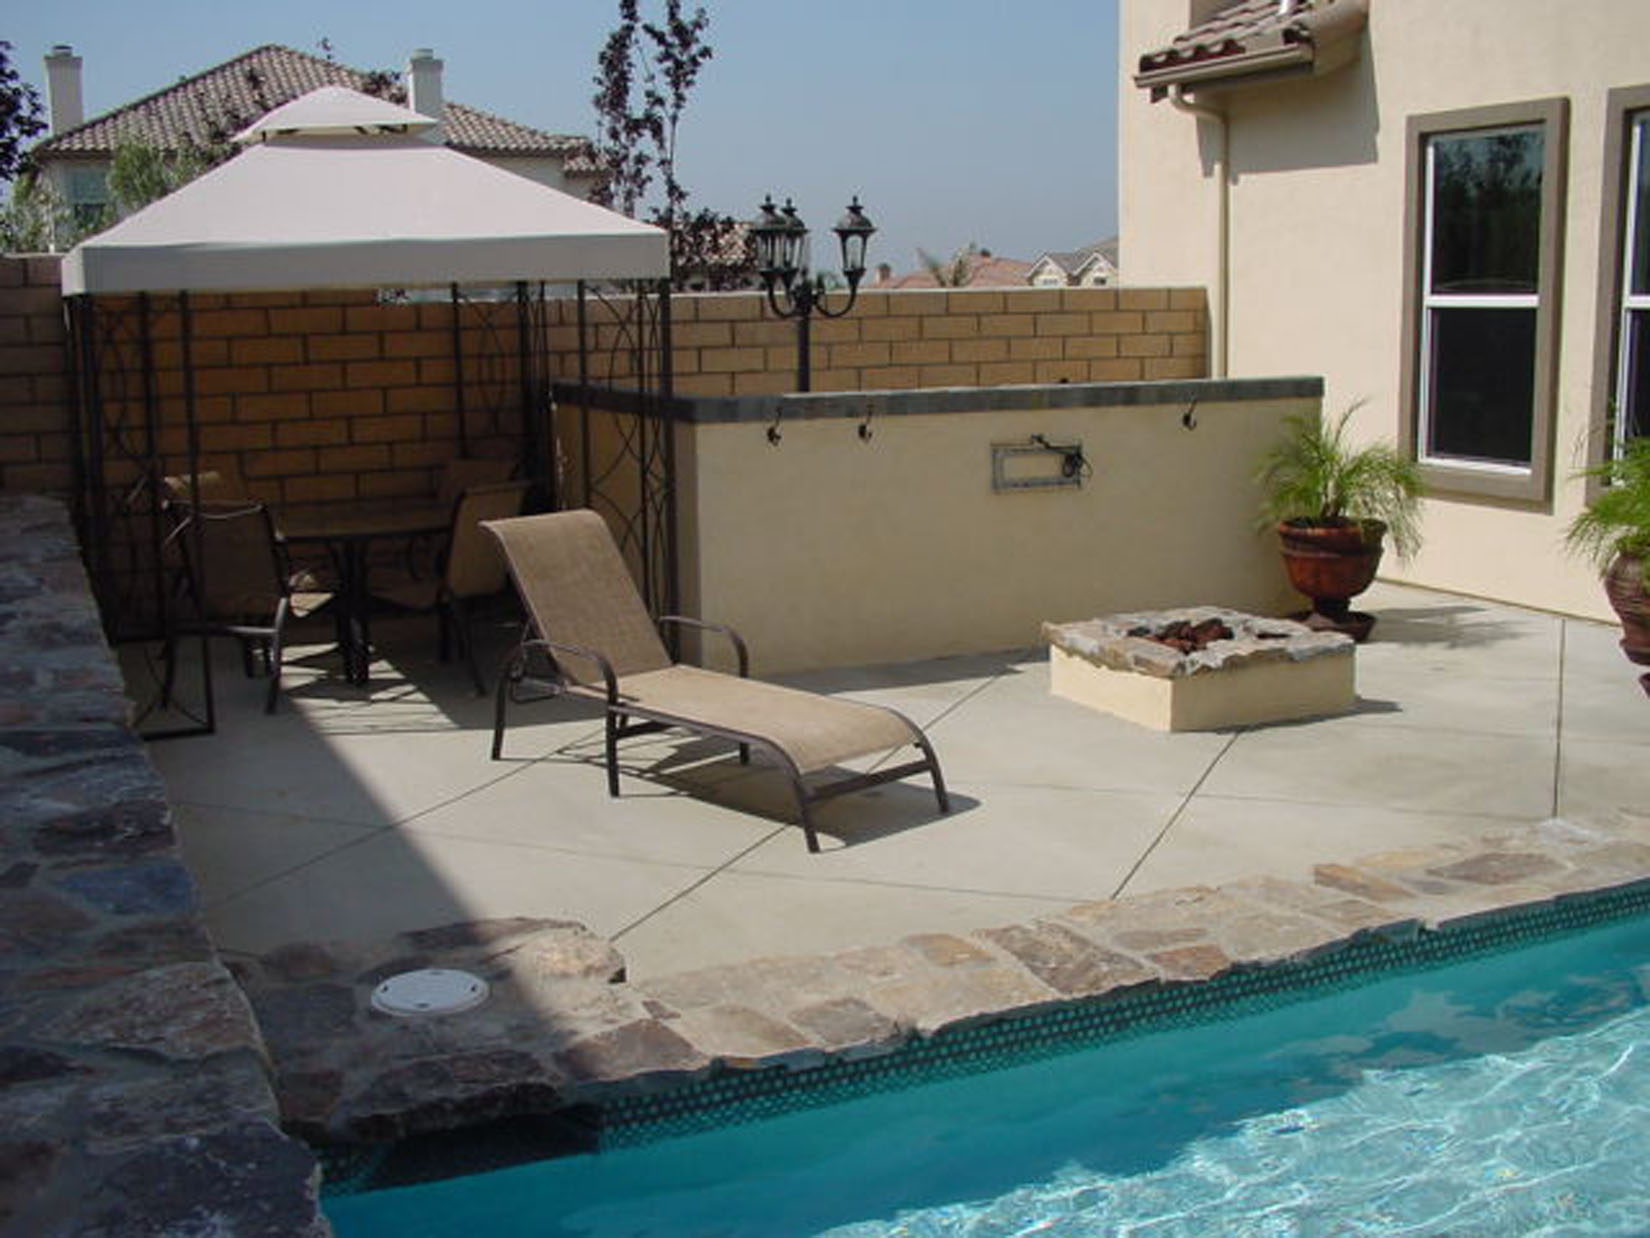 Bbq 39 s firepits how to build your own pool how to build for Build your own pool